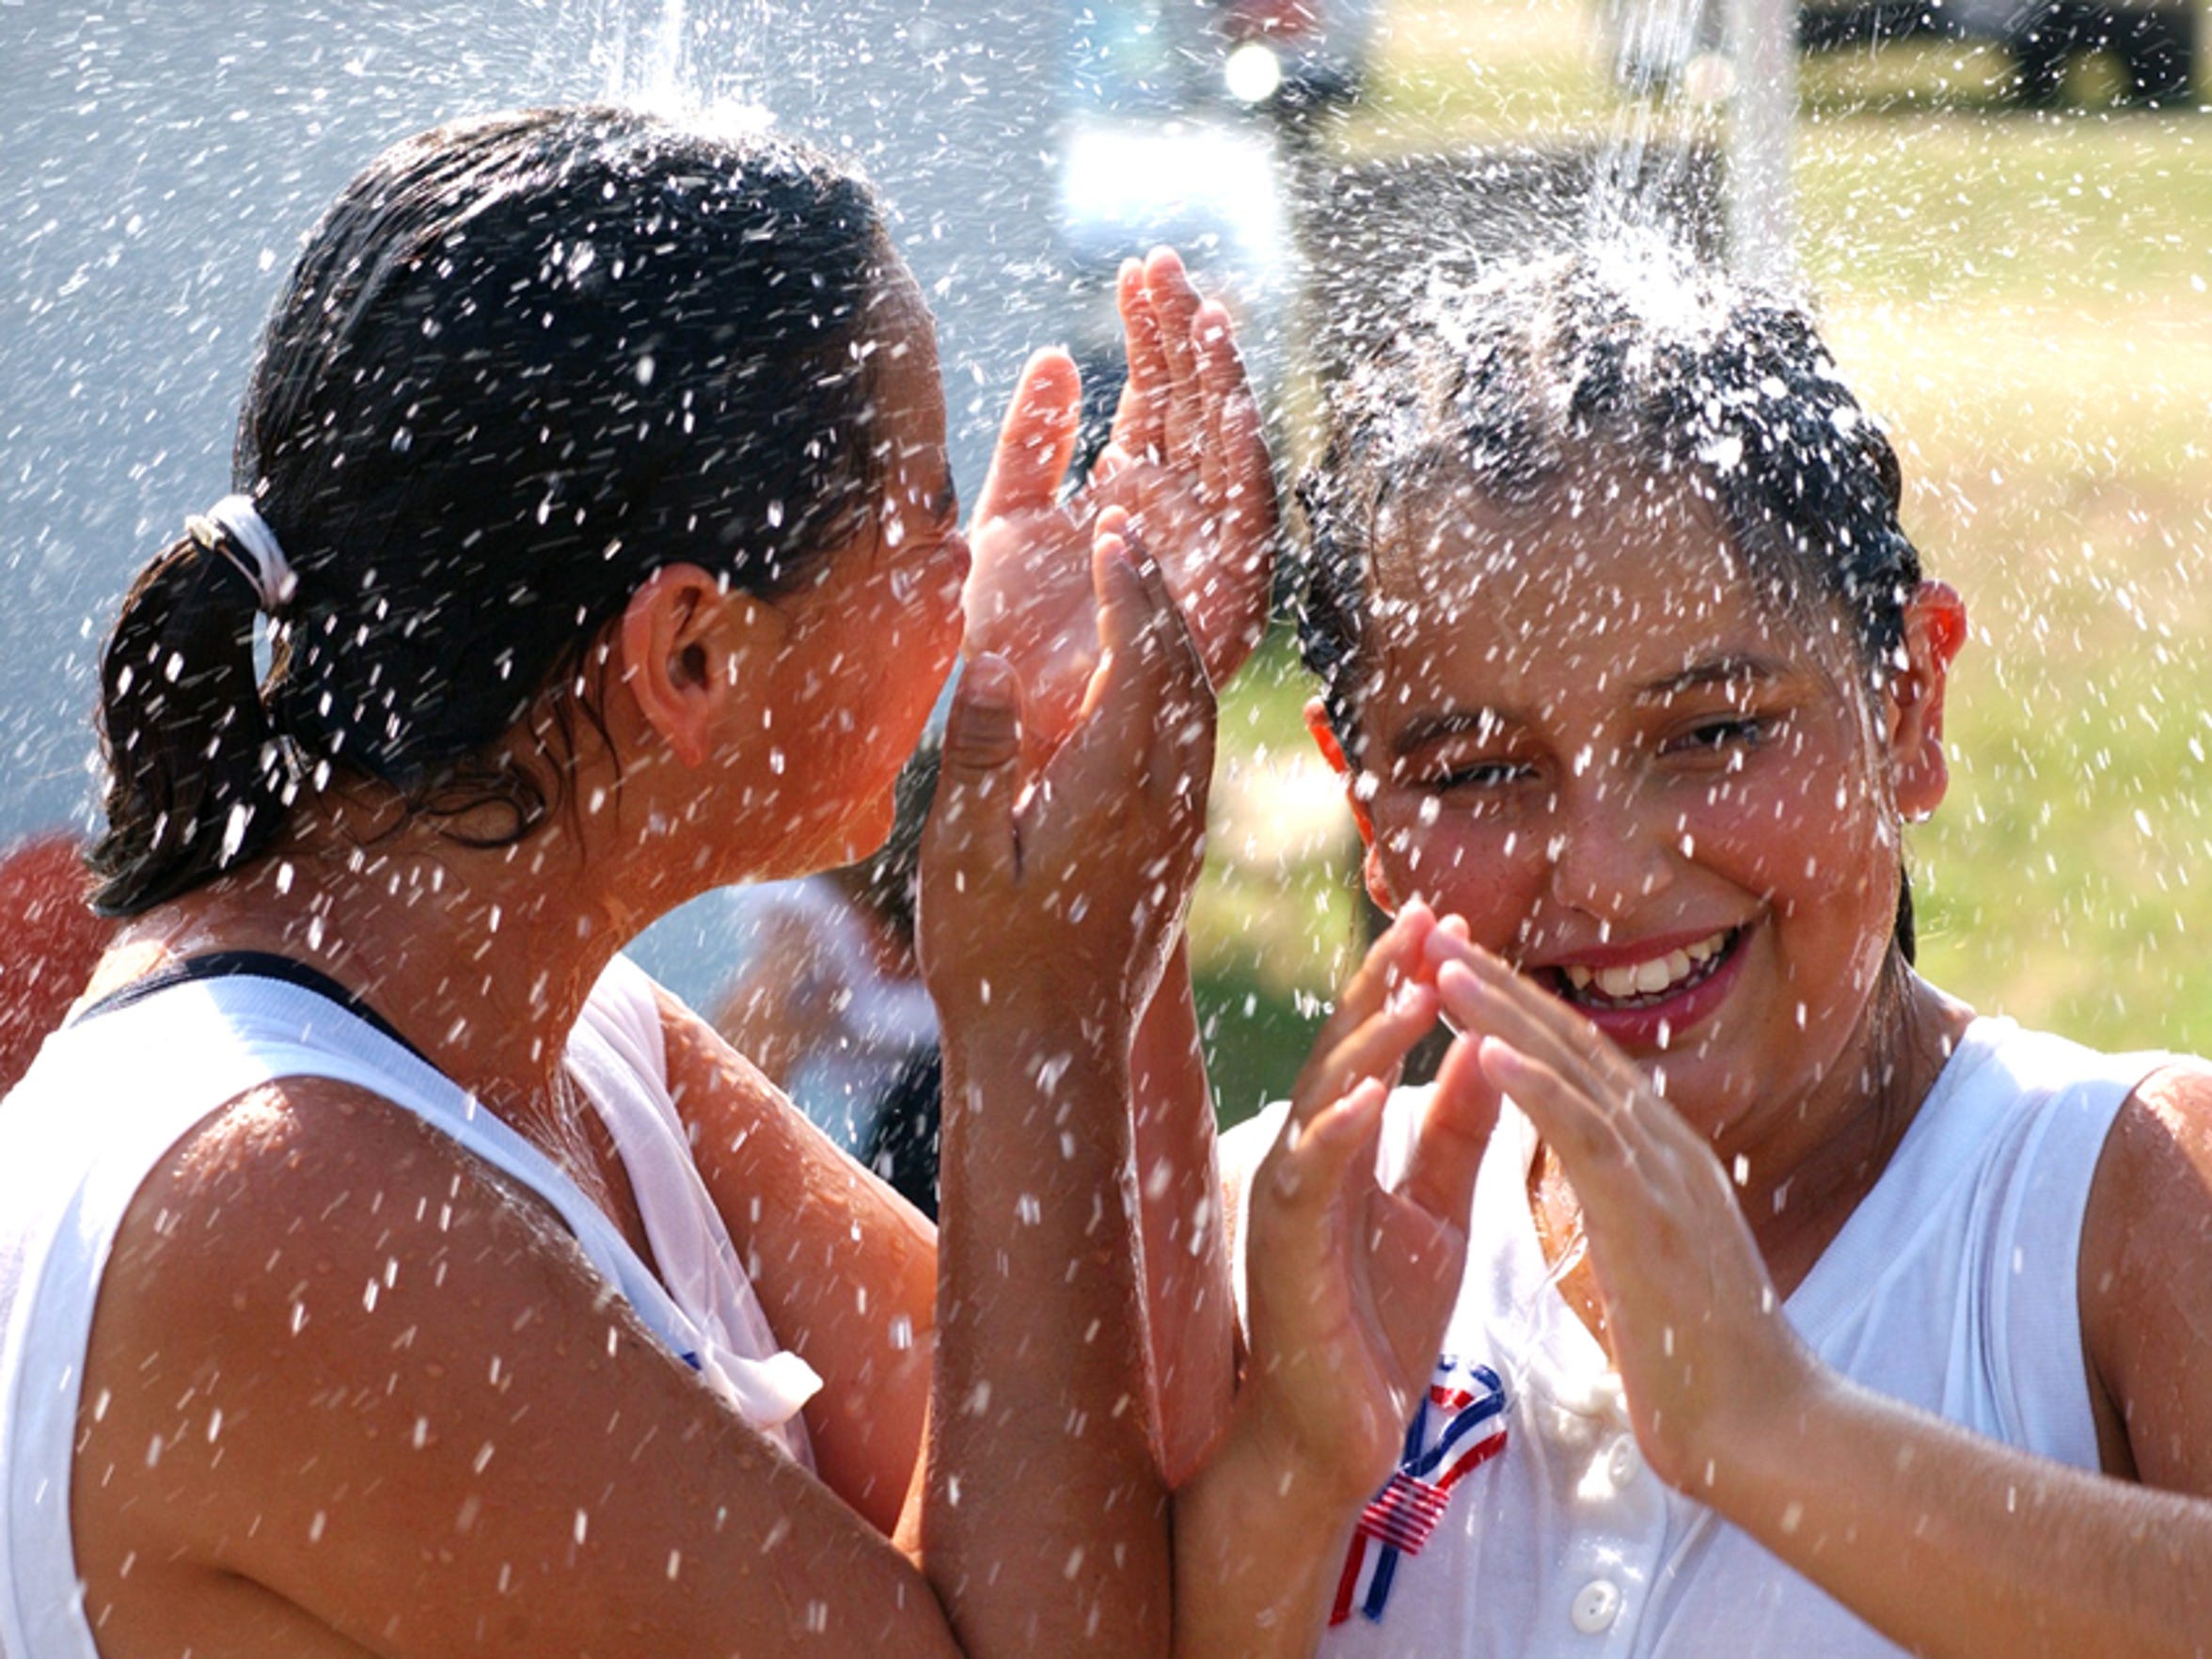 From the left, Leslie Pena and Jessica Ramos cool off in some shower sprinklers set up for people to cool off in, during the Little Mill Kickball State Tournament in Flour Bluff.